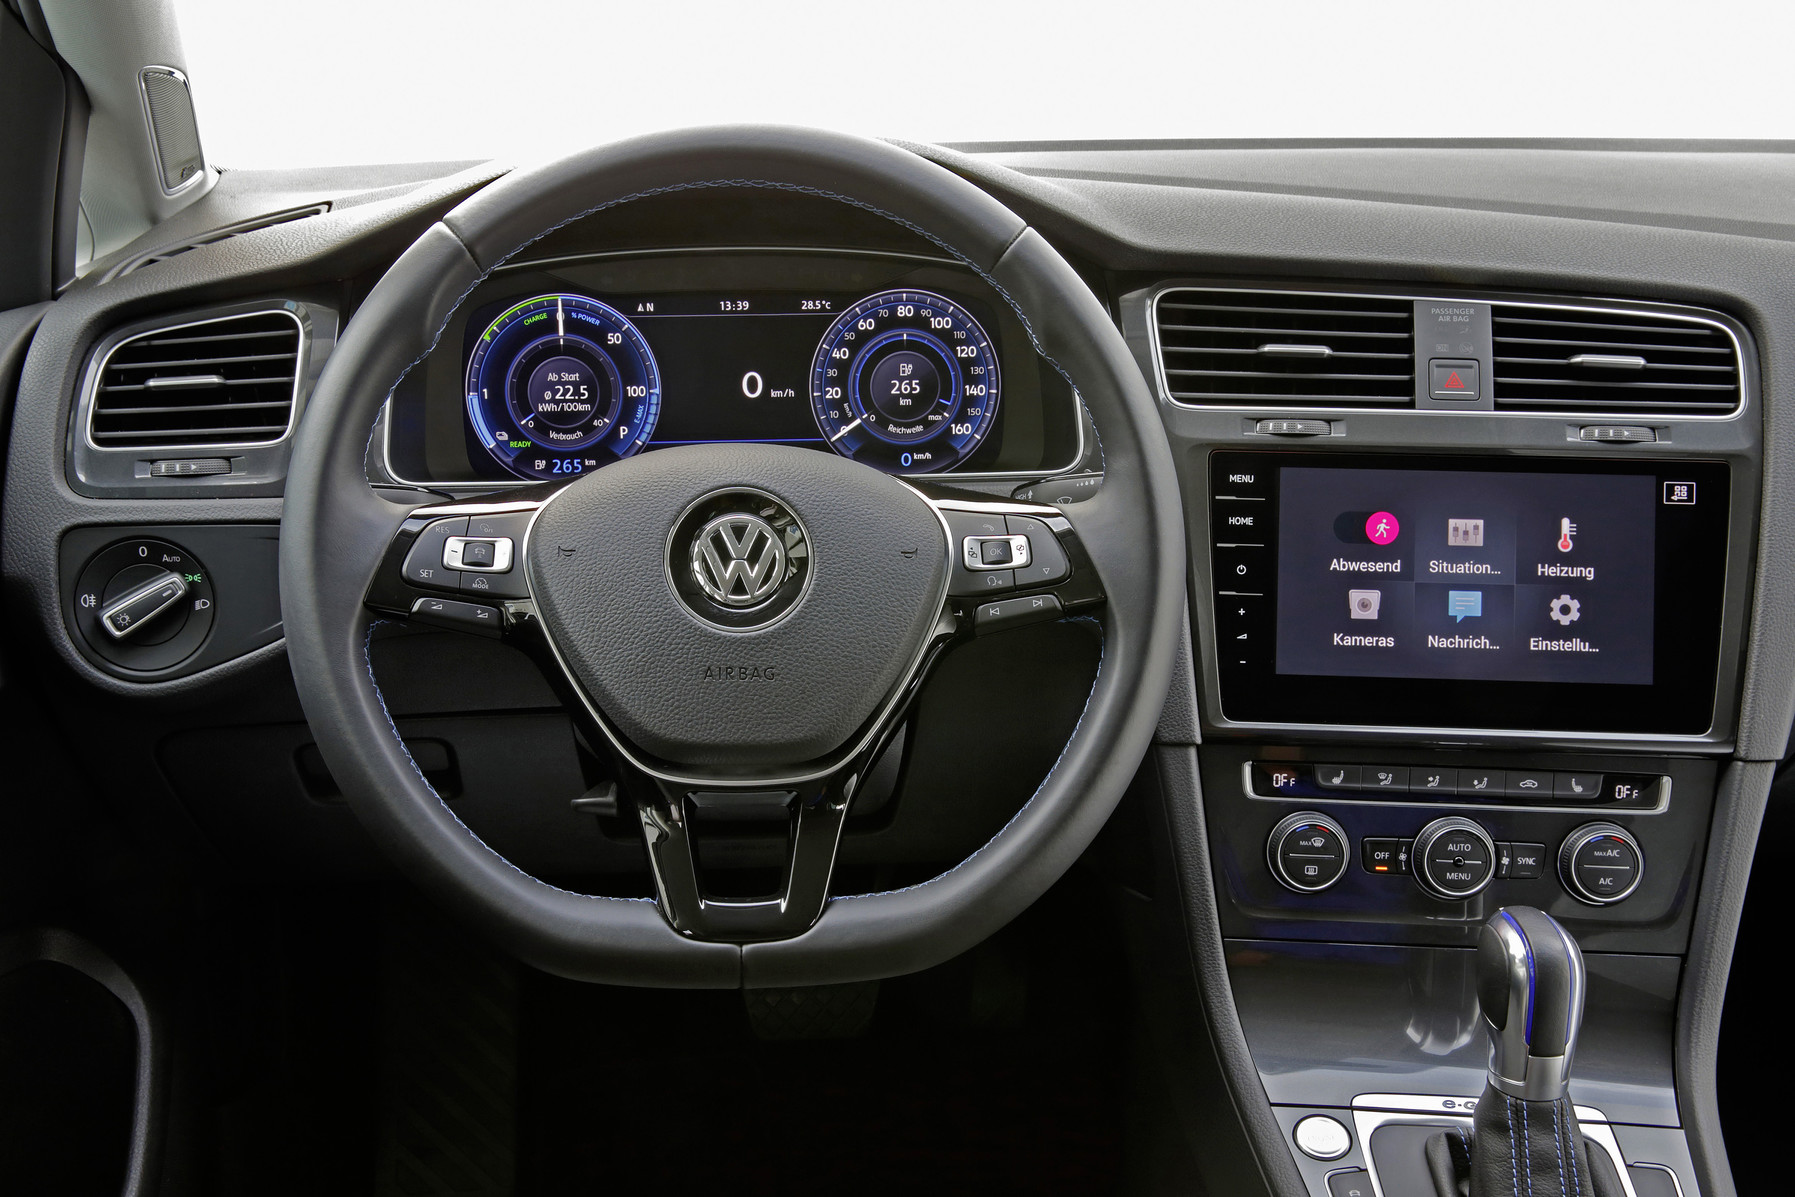 The Volkswagen e-Golf has a refreshingly modern interior that is typical of the brand